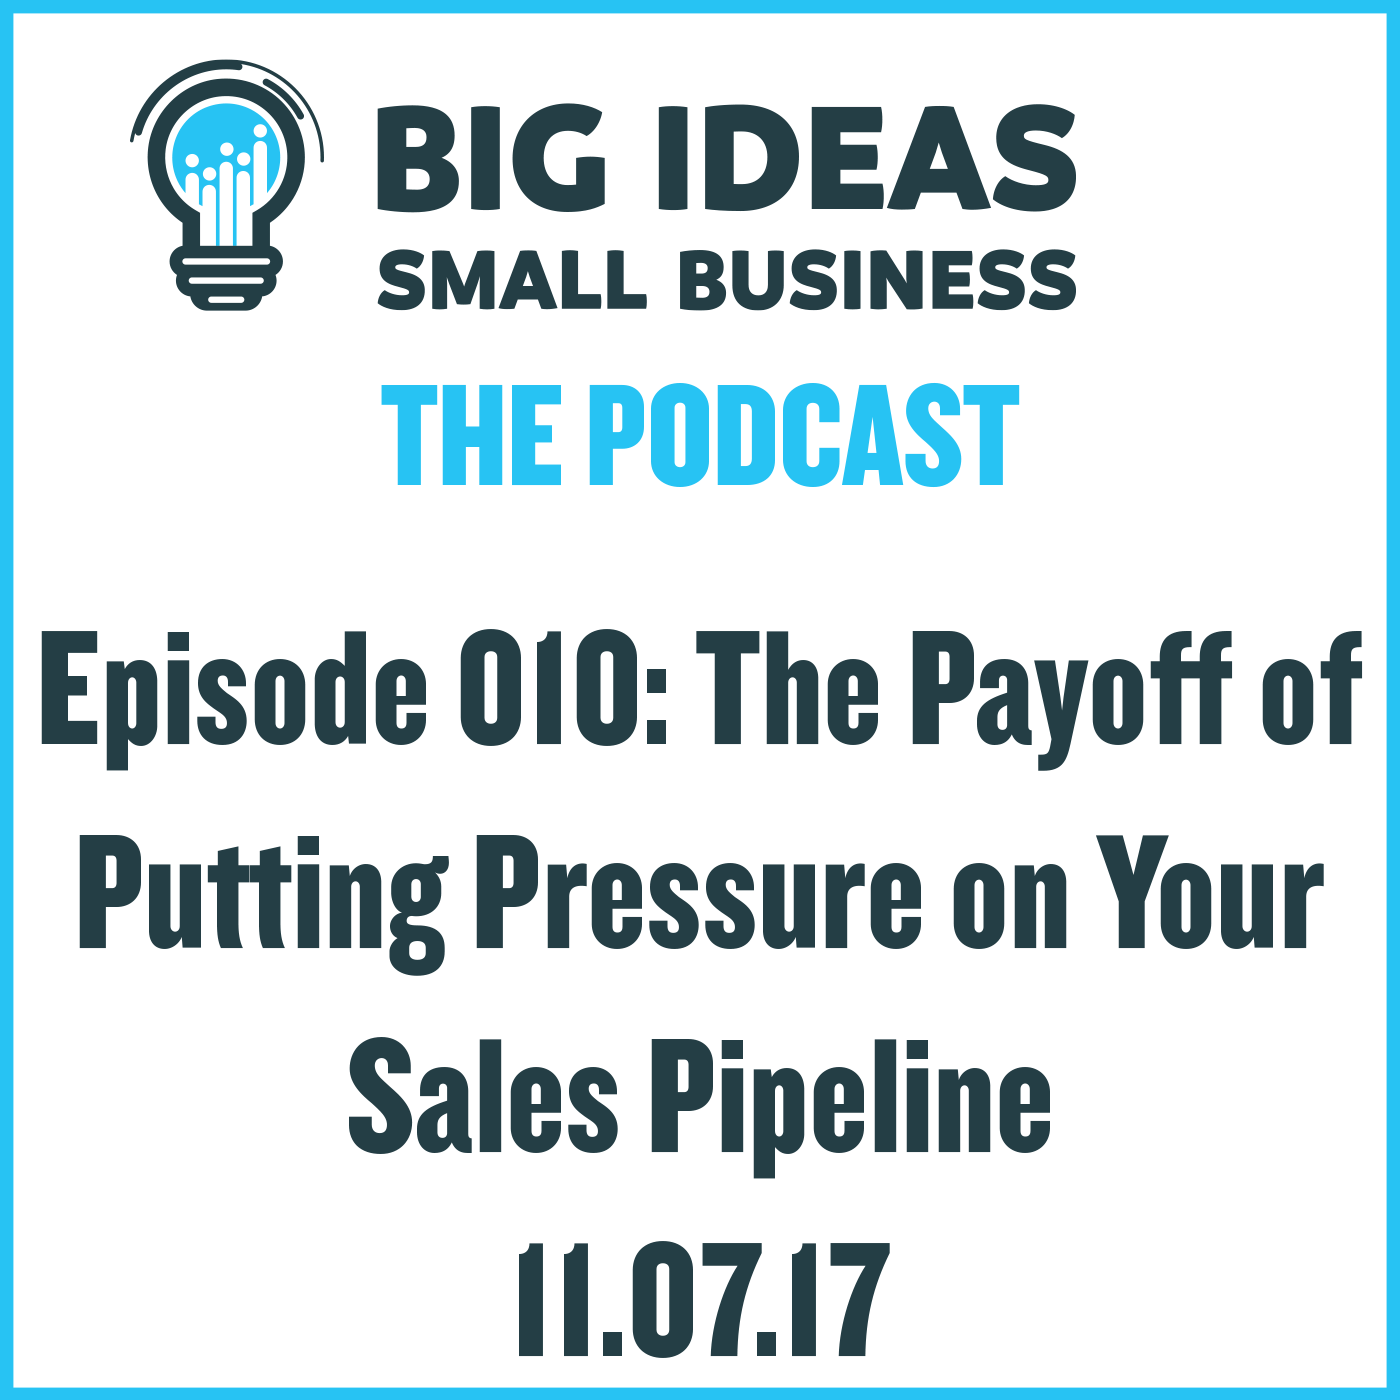 The Payoff of Putting Pressure on Your Sales Pipeline